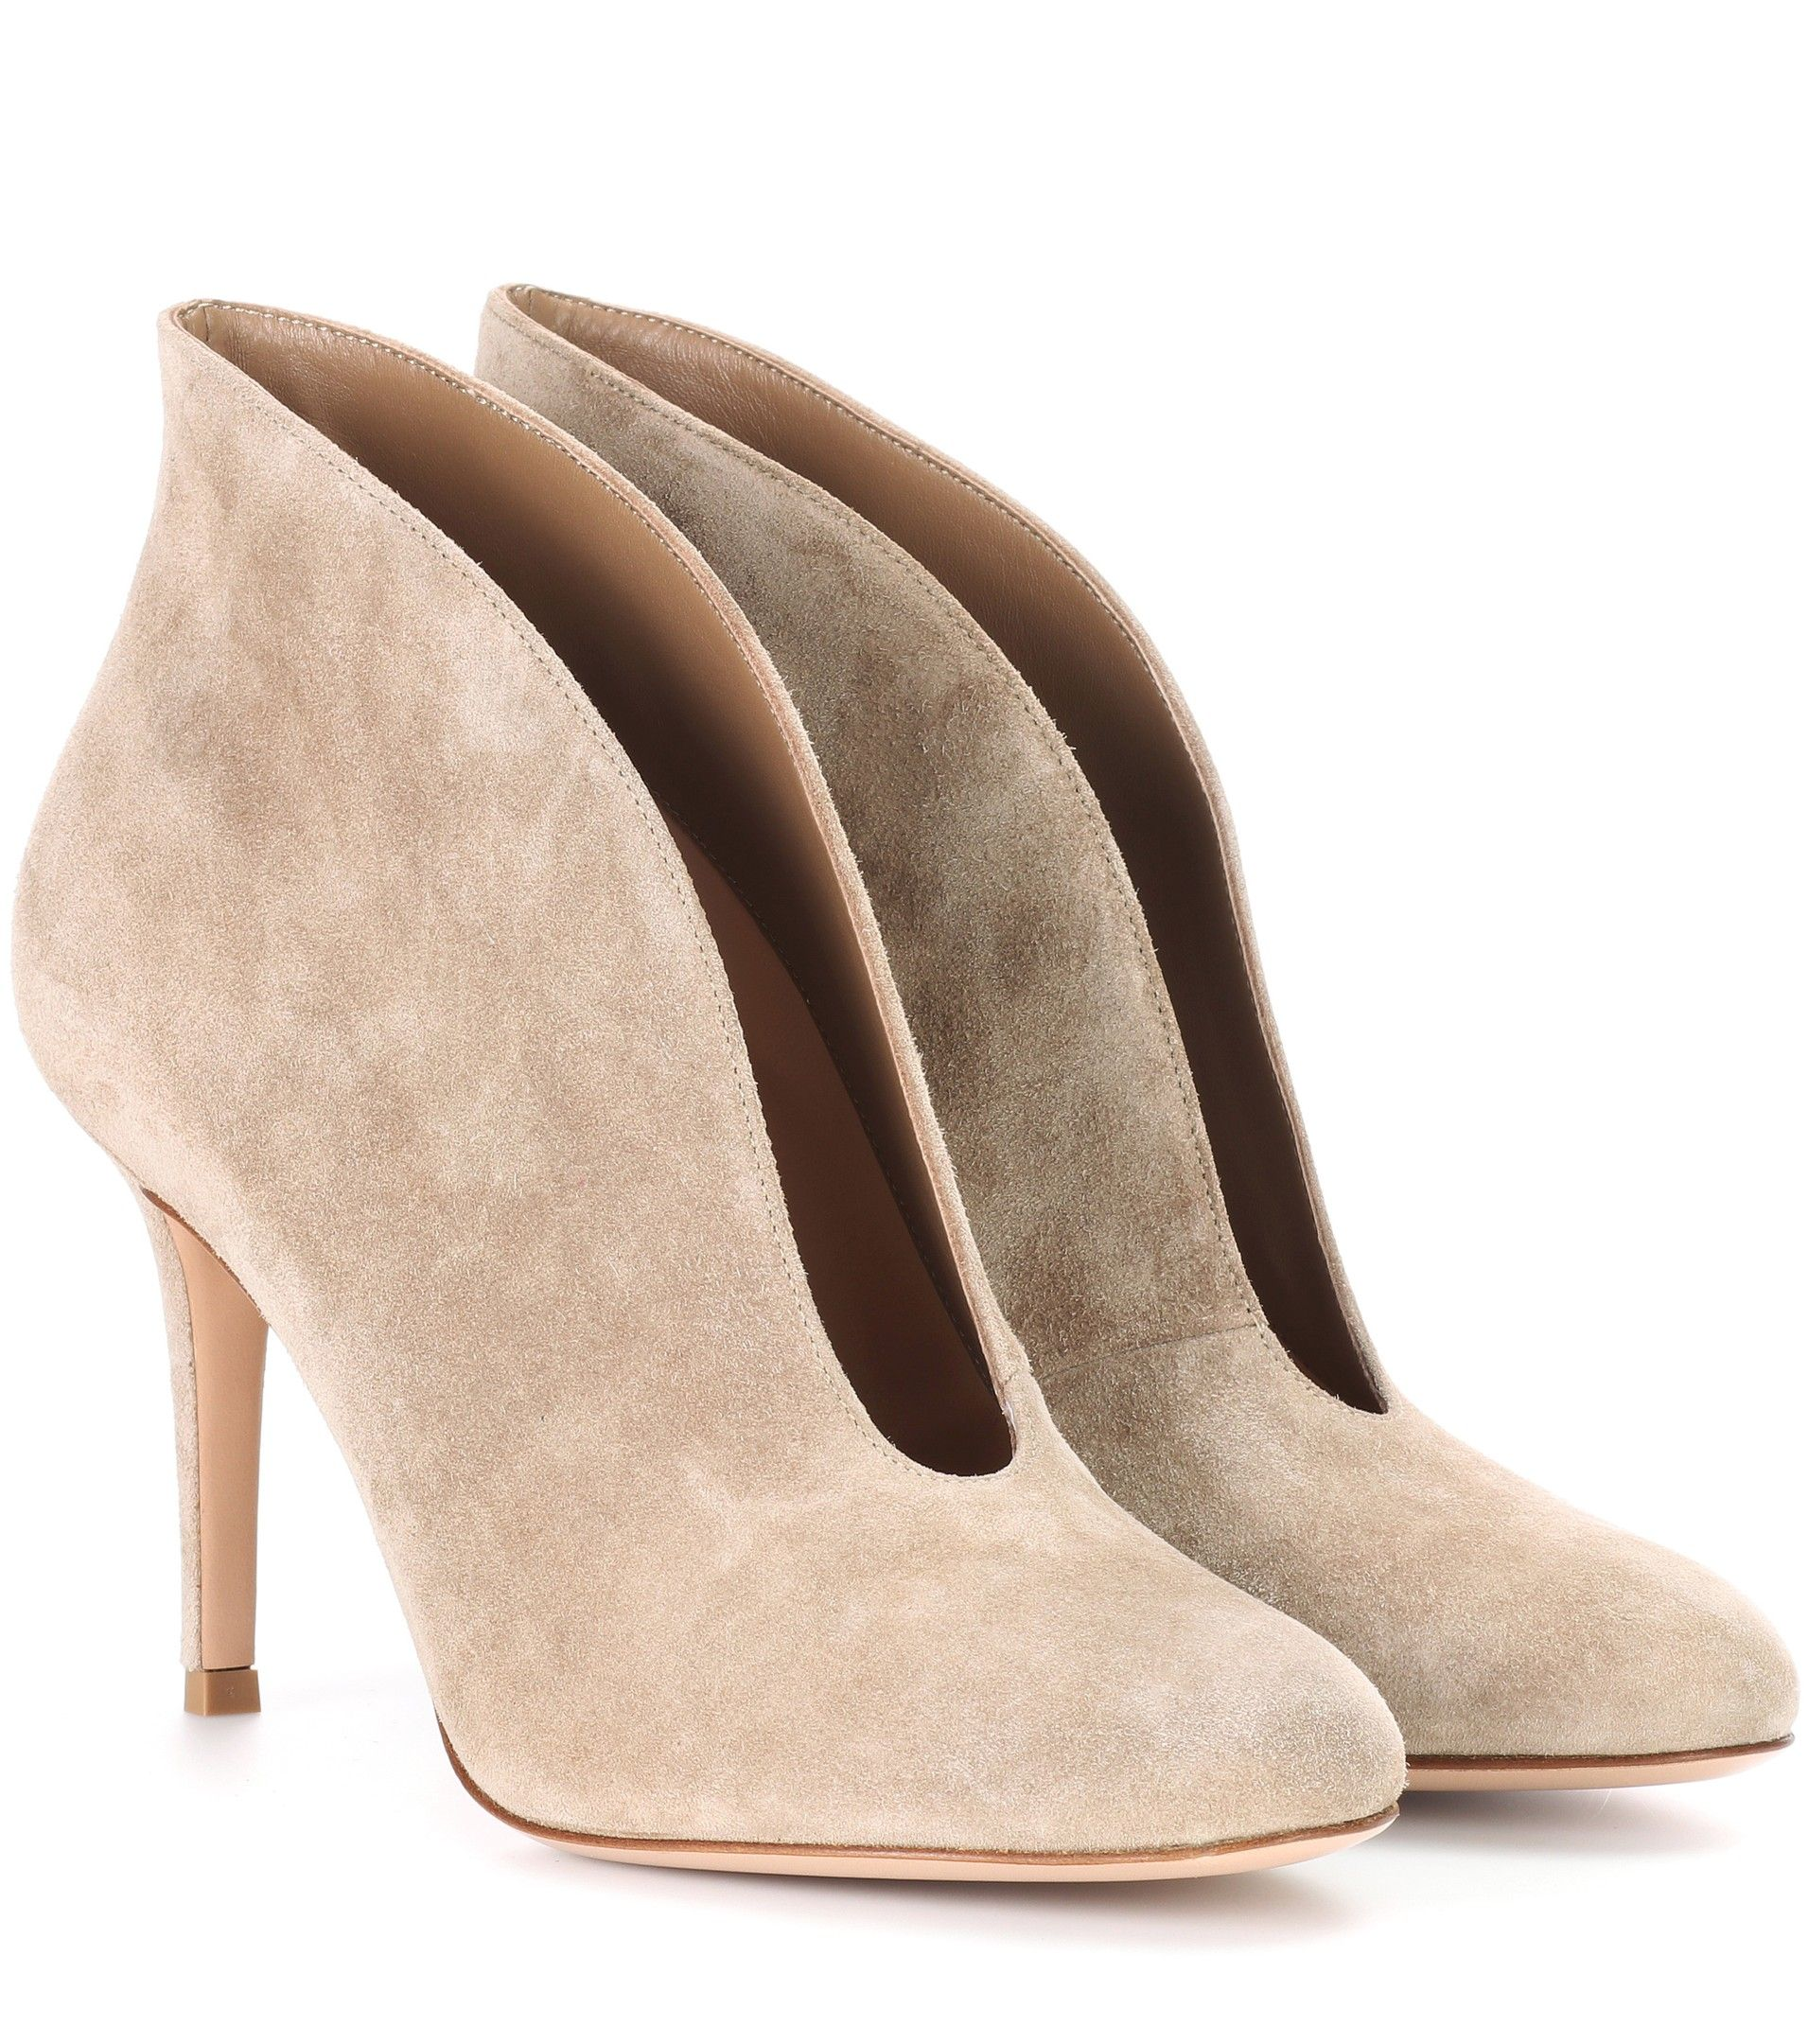 Gianvito Rossi Vamp 85 suede ankle boots Octxm